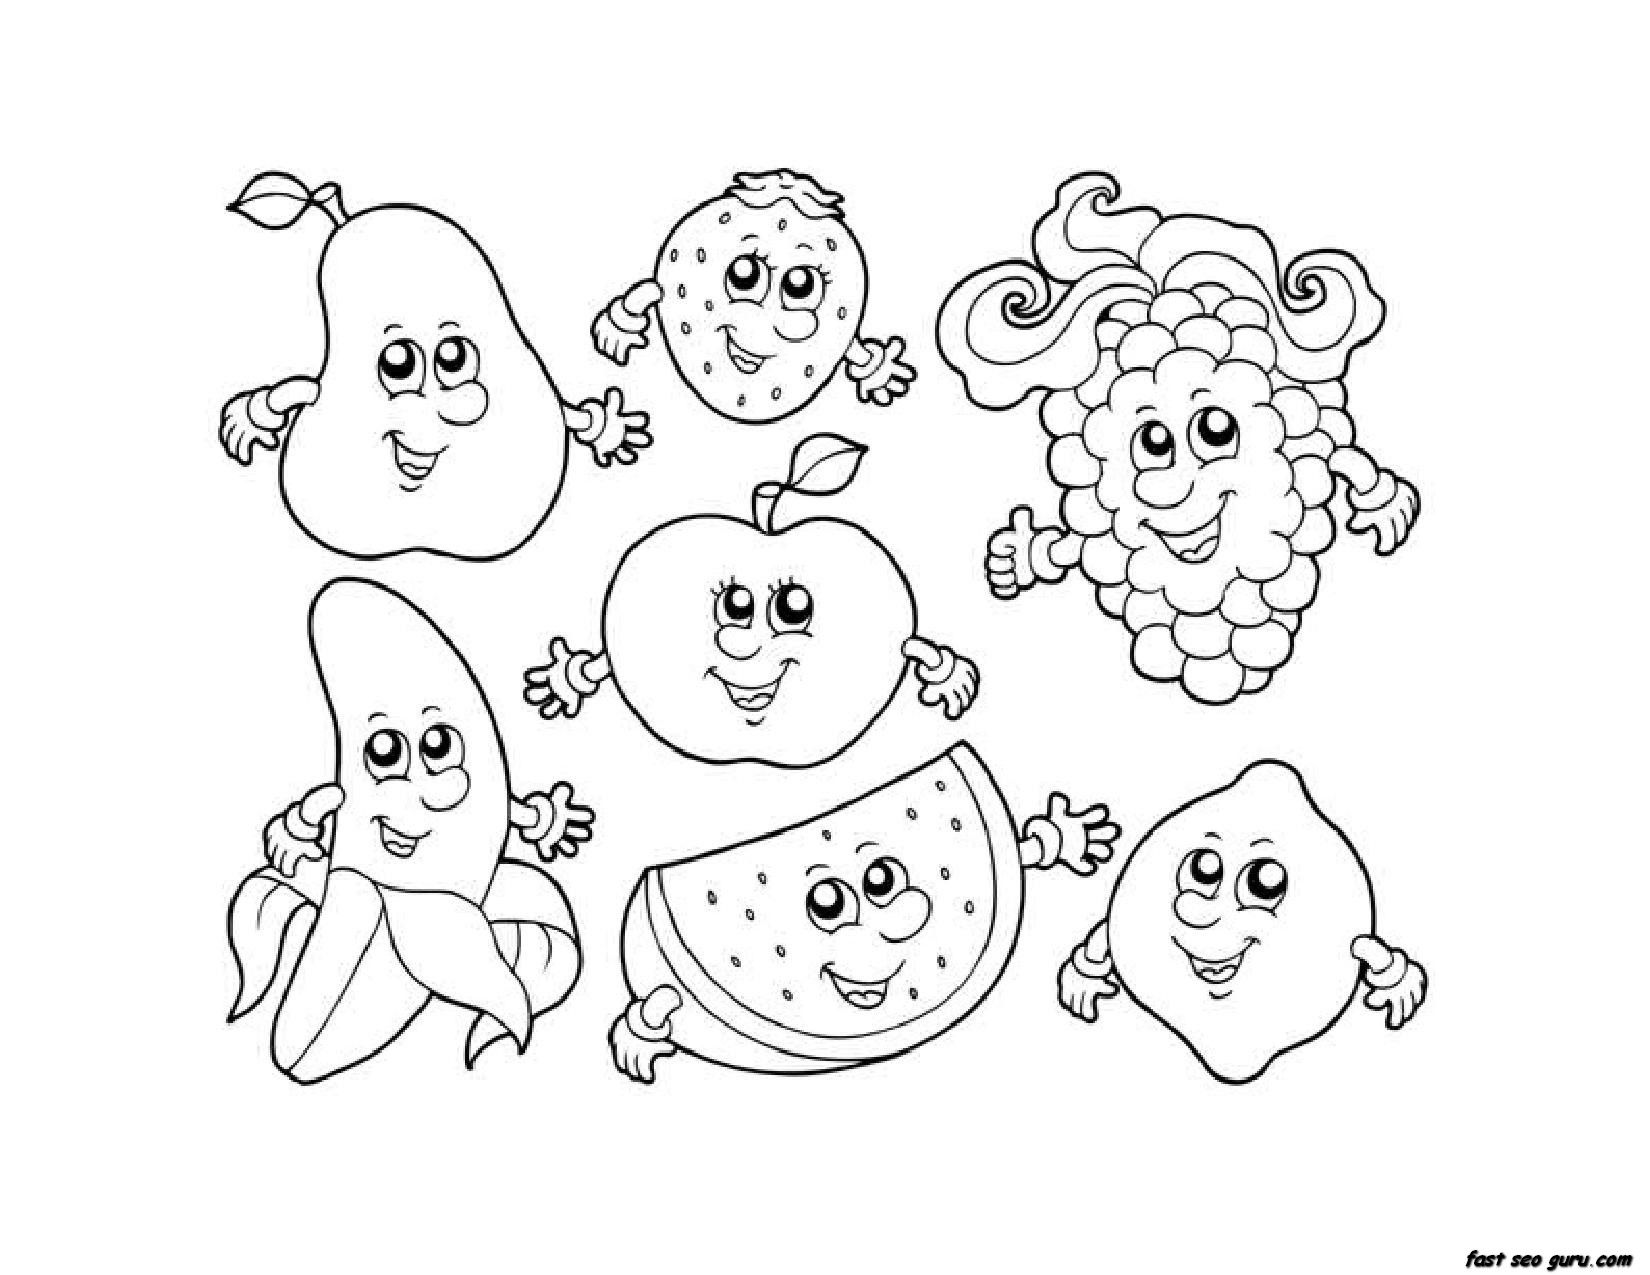 Apple Watermelon Strawberry Banana Gcoloring Pages